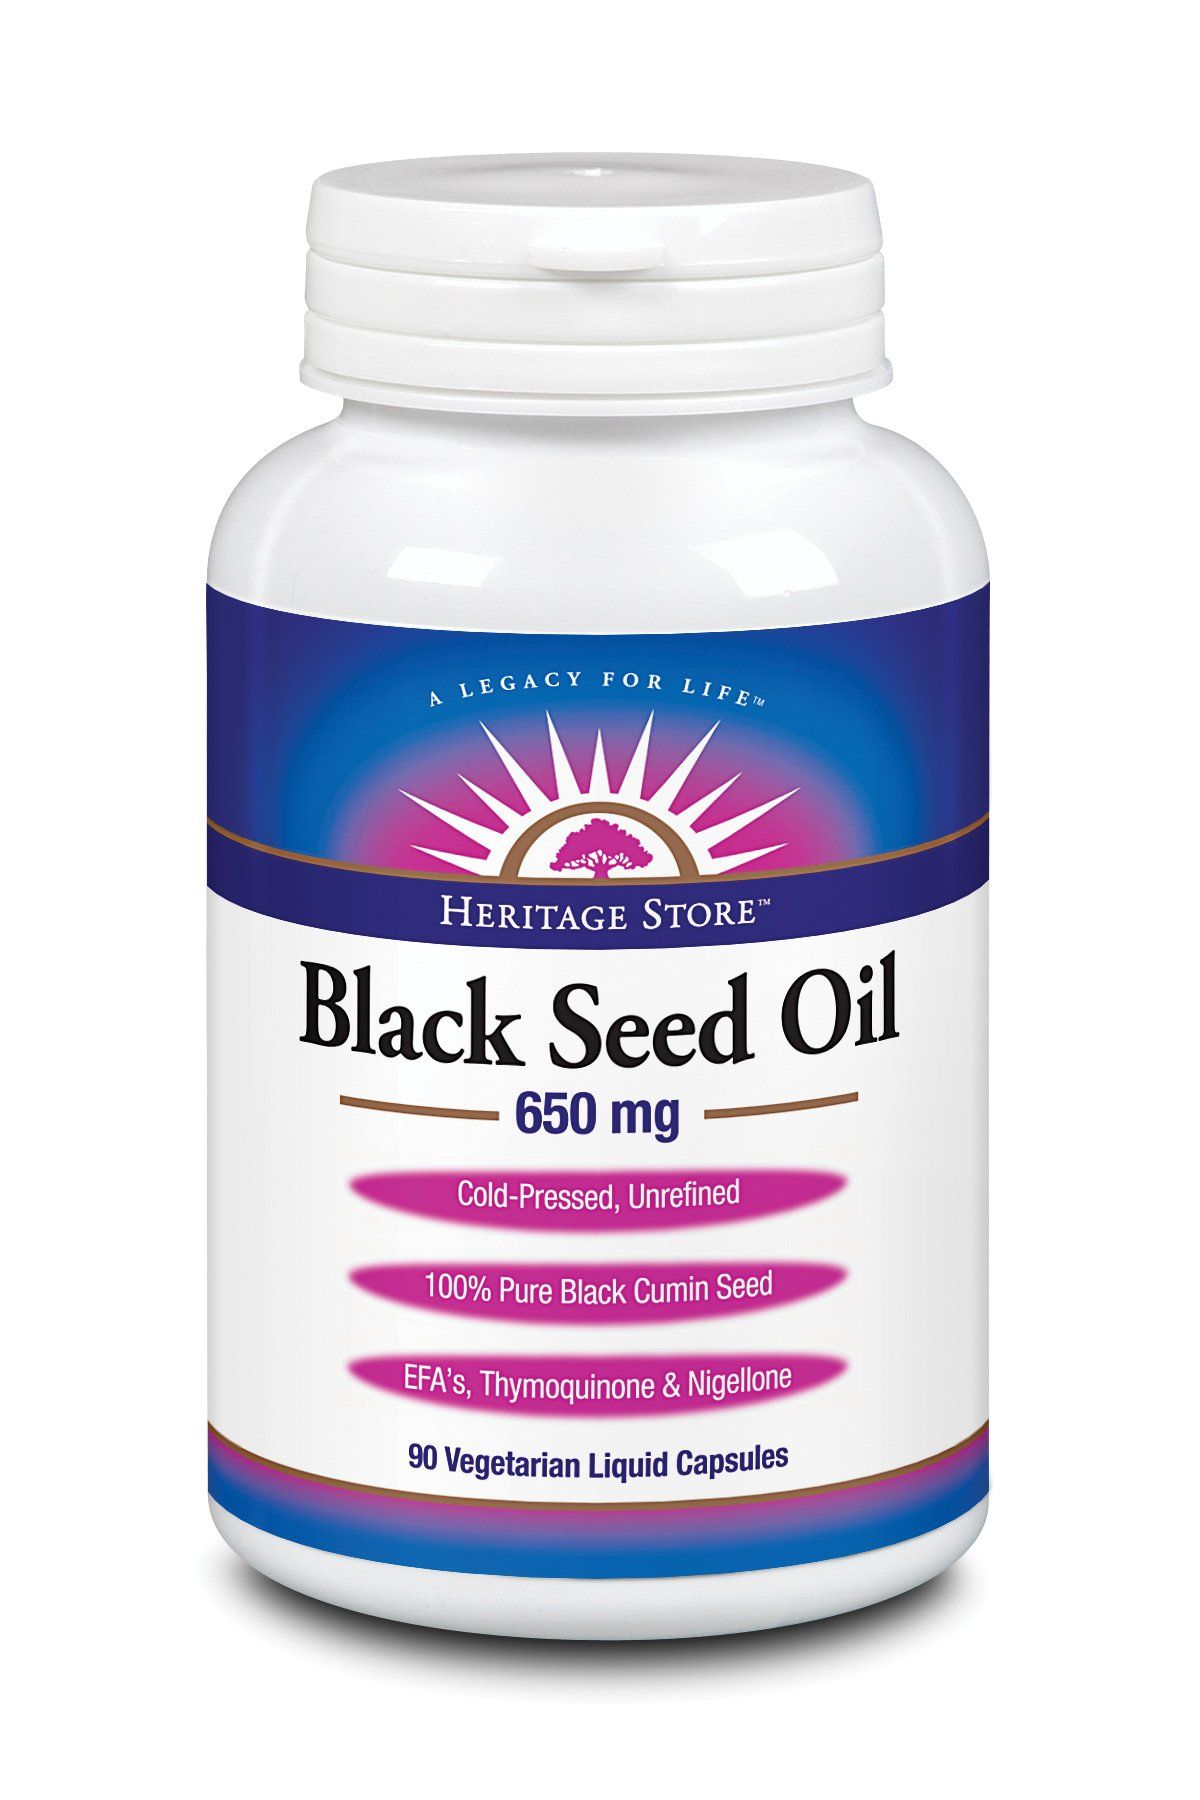 34+ Black seed oil capsules benefits ideas in 2021